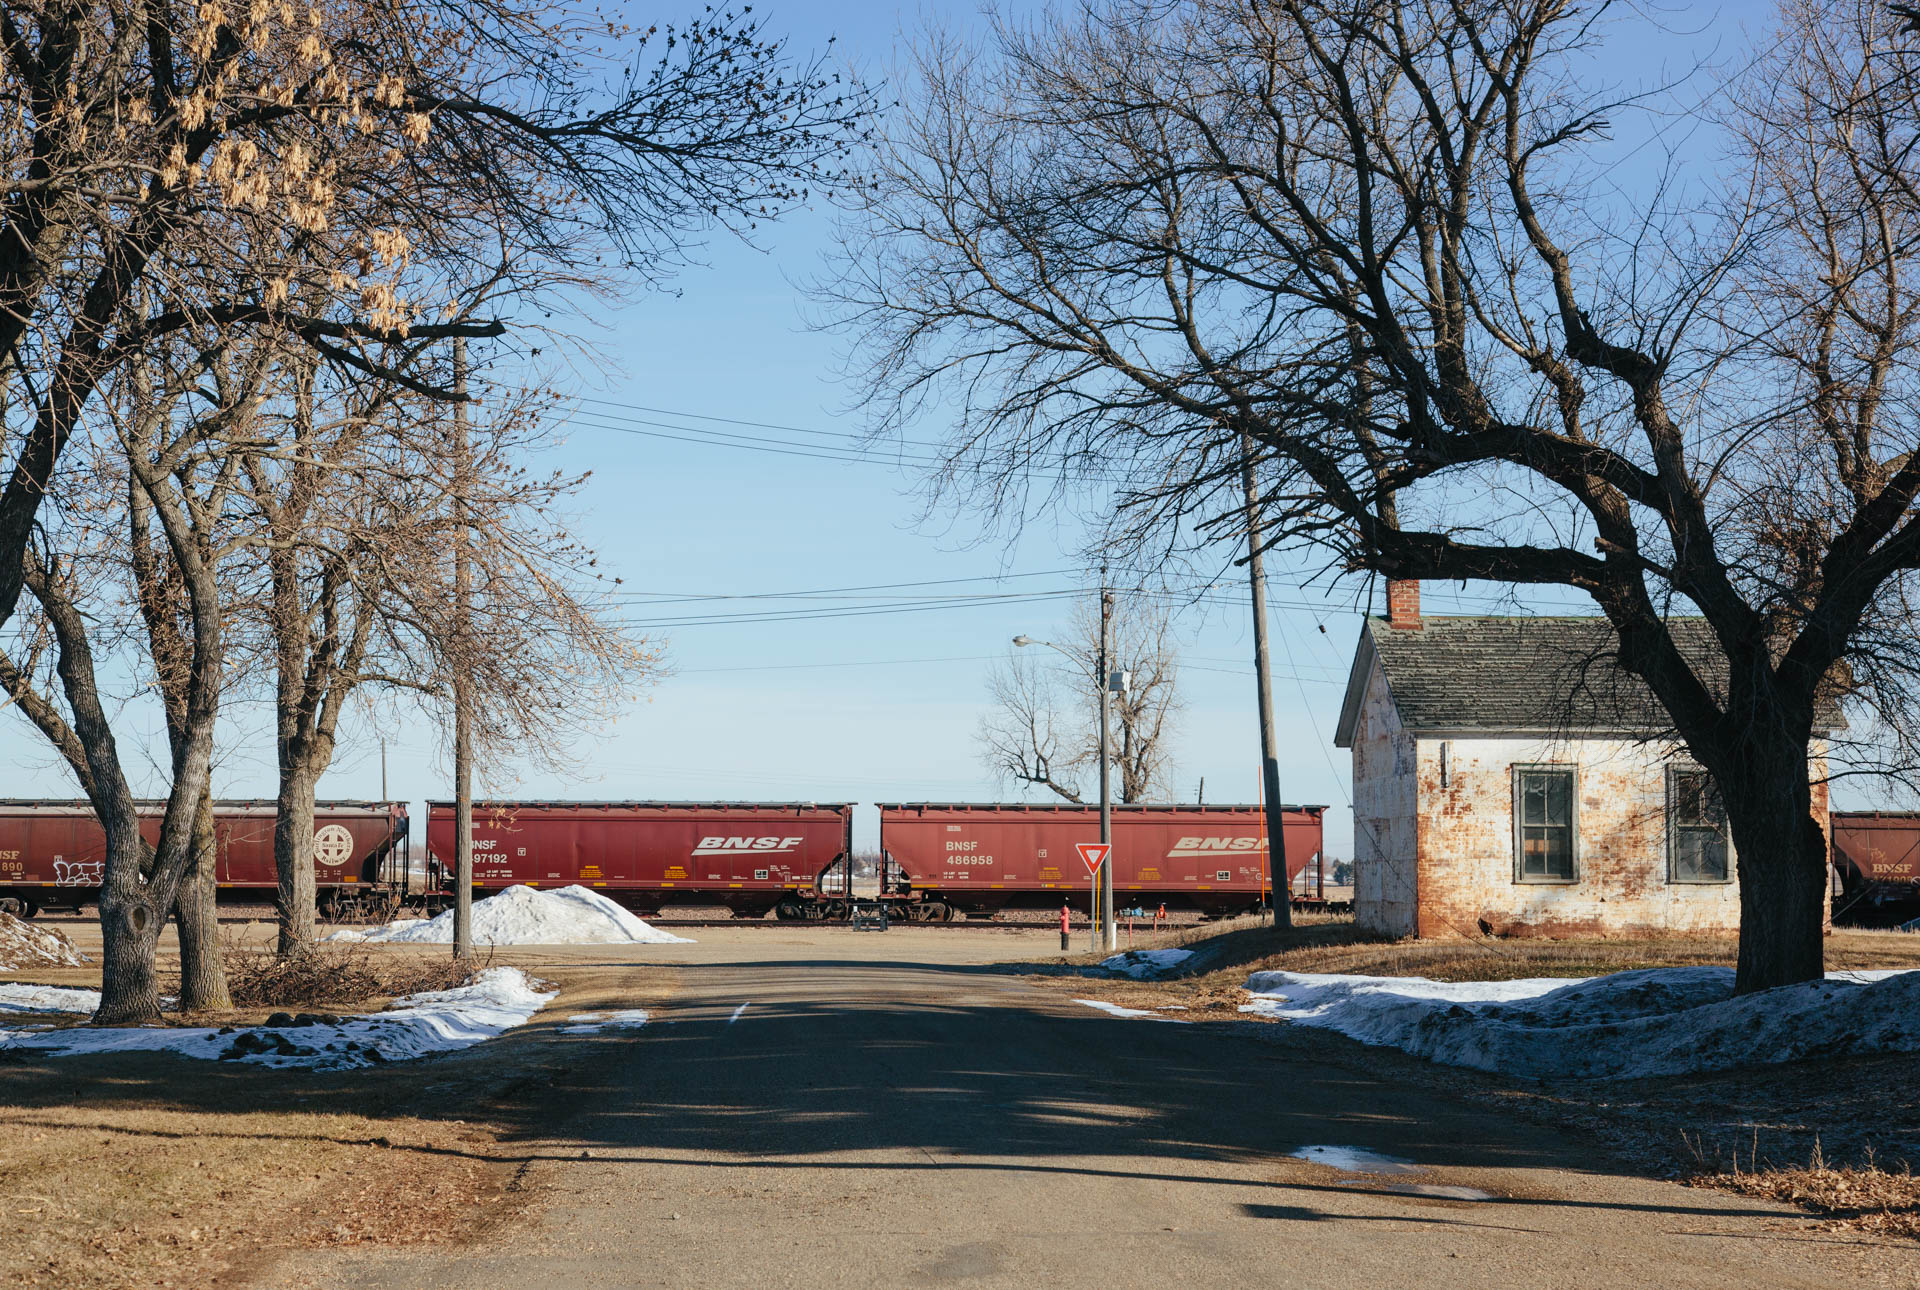 grain-railroad-cars-small-white-building-bowdle-sd